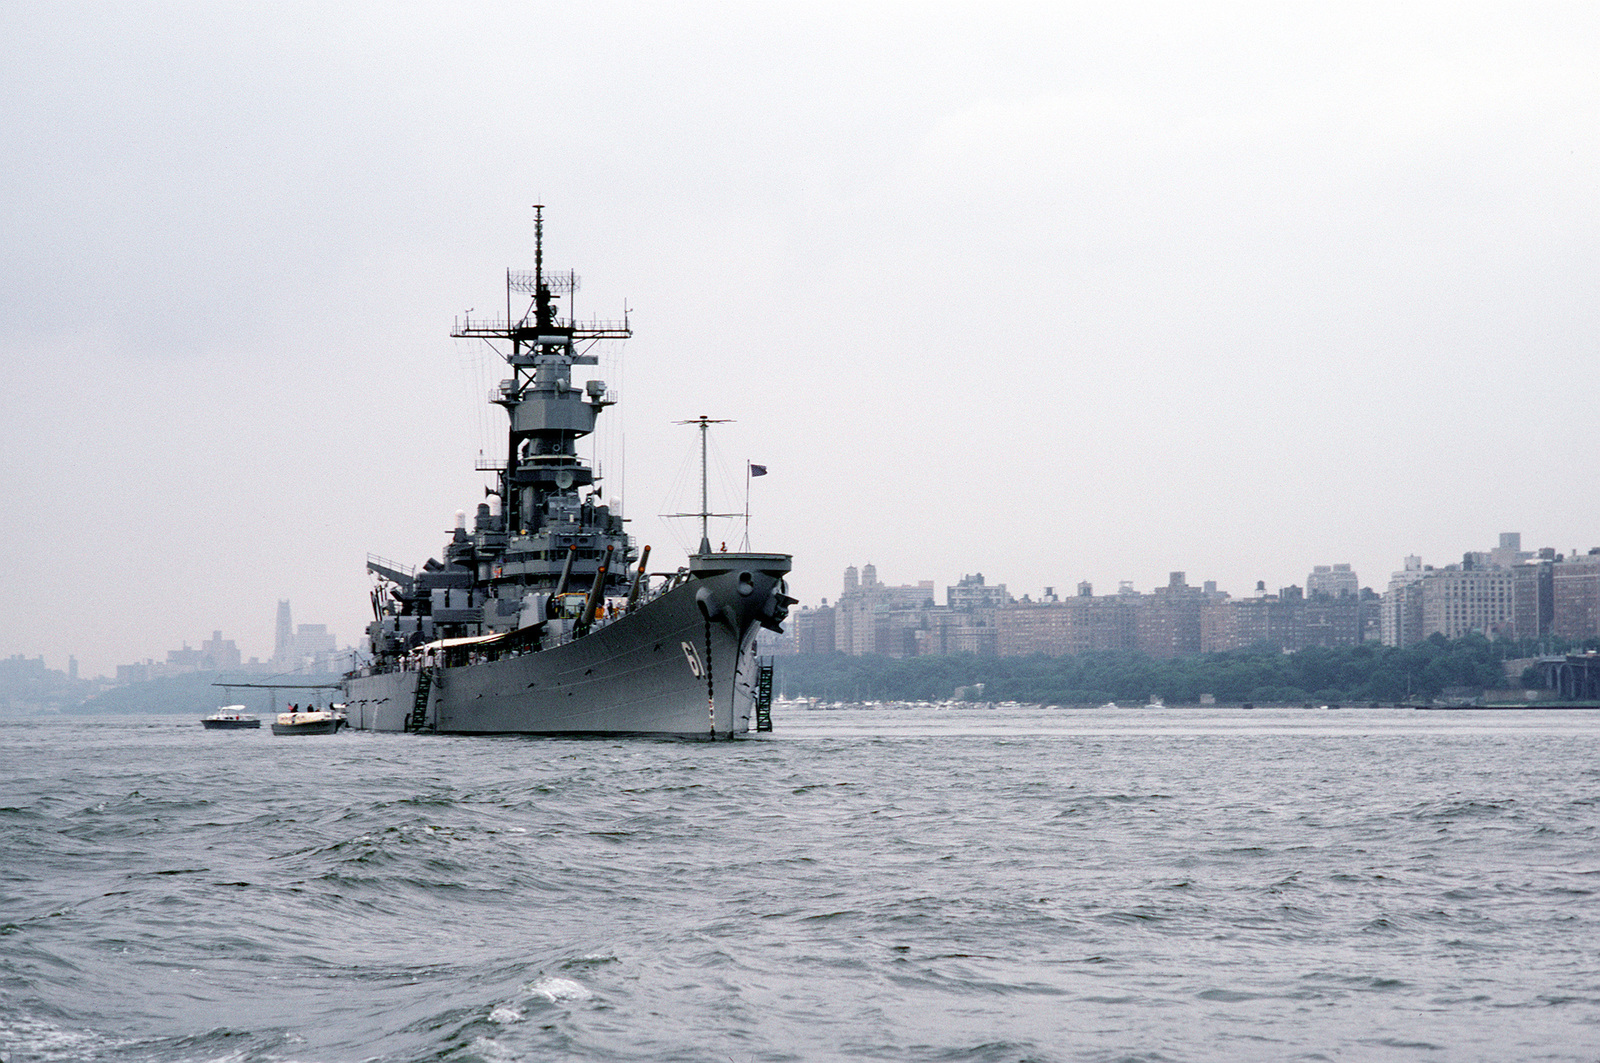 A starboard bow view of the battleship USS IOWA (BB-61